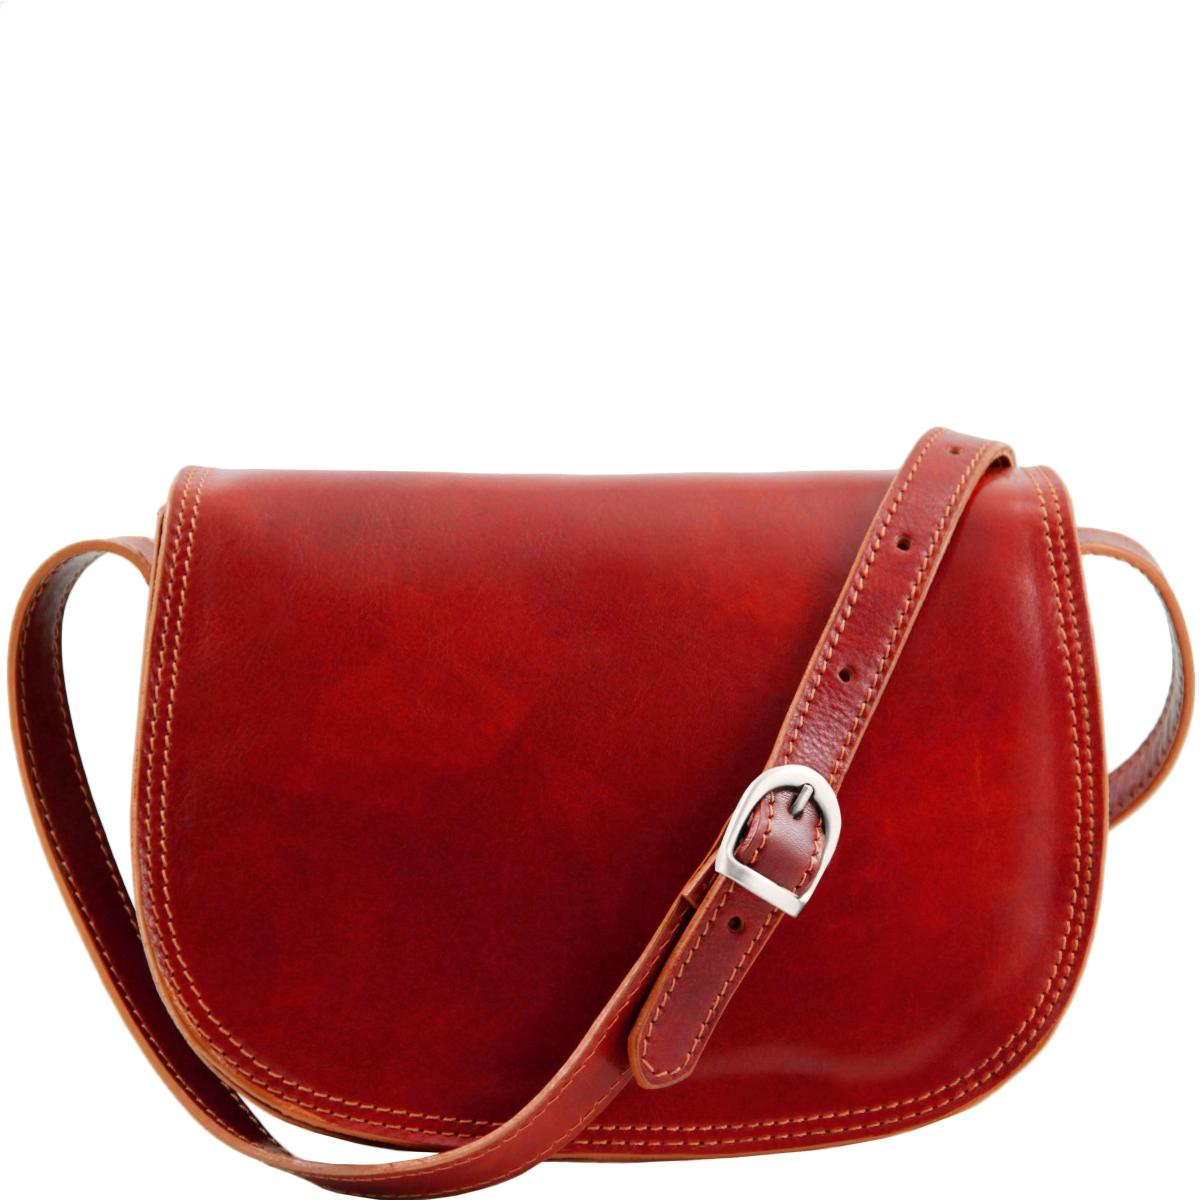 Sac Bandoulière Cuir Rouge Femme -Tuscany Leather-